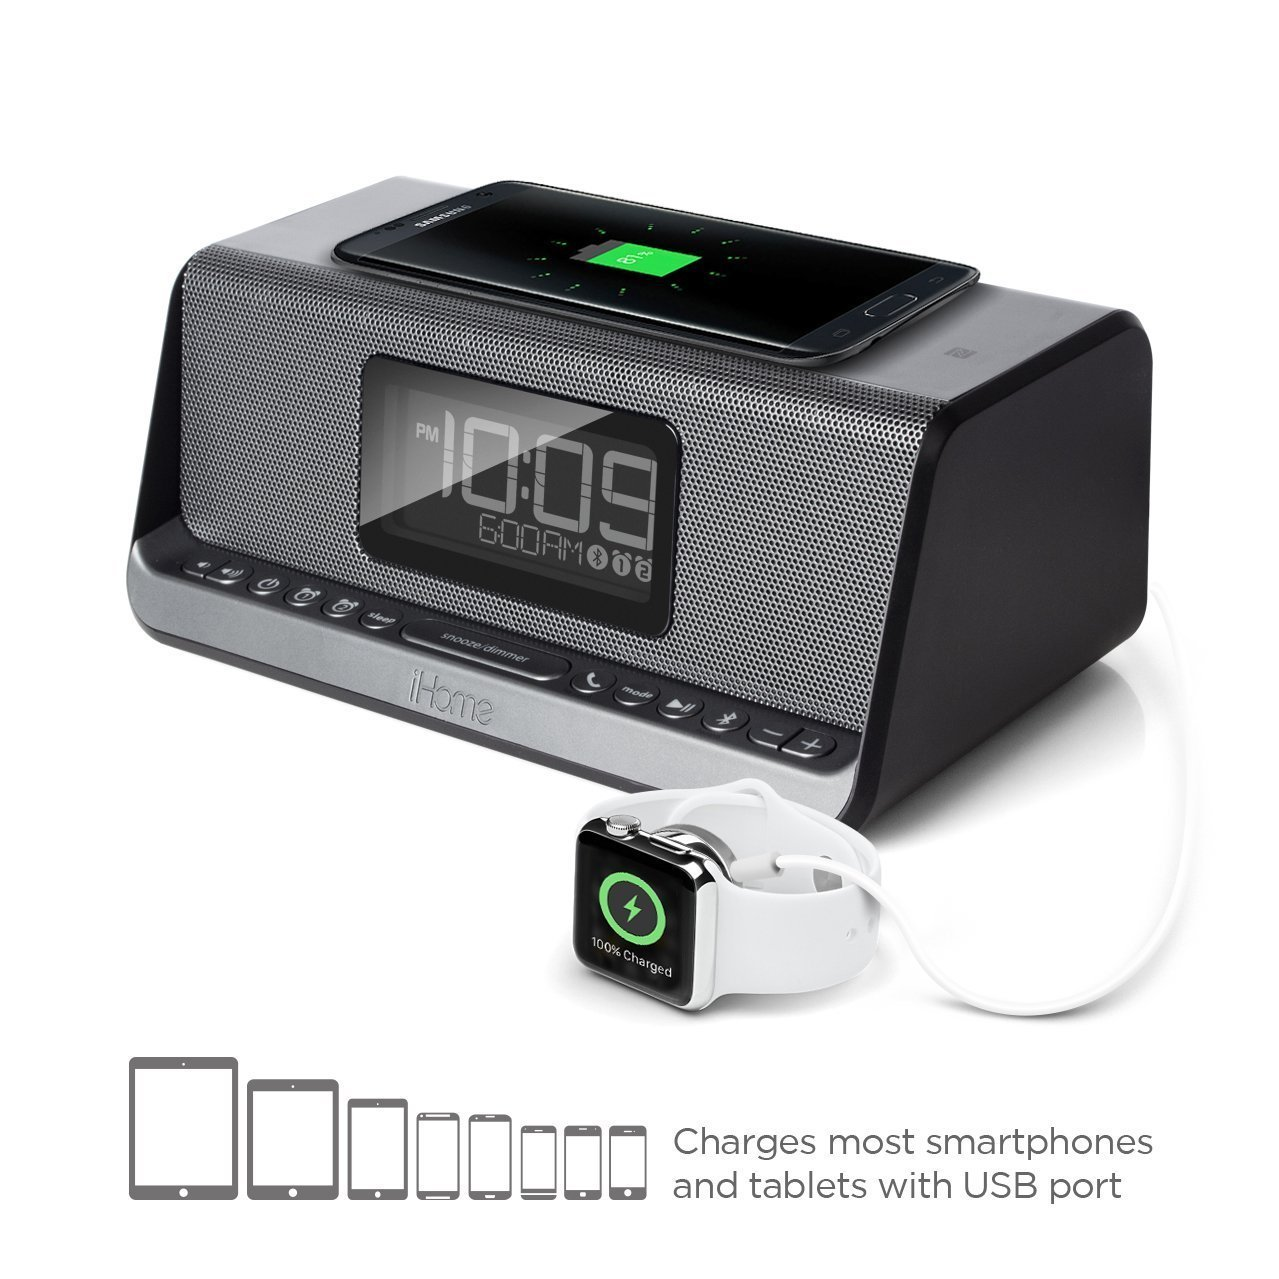 iHome iBN350 NFC Bluetooth Stereo Dual Alarm Clock with Speakerphone, Qi Wireless Charging and USB Out Charging for Any USB Device - (Certified Refurbished)